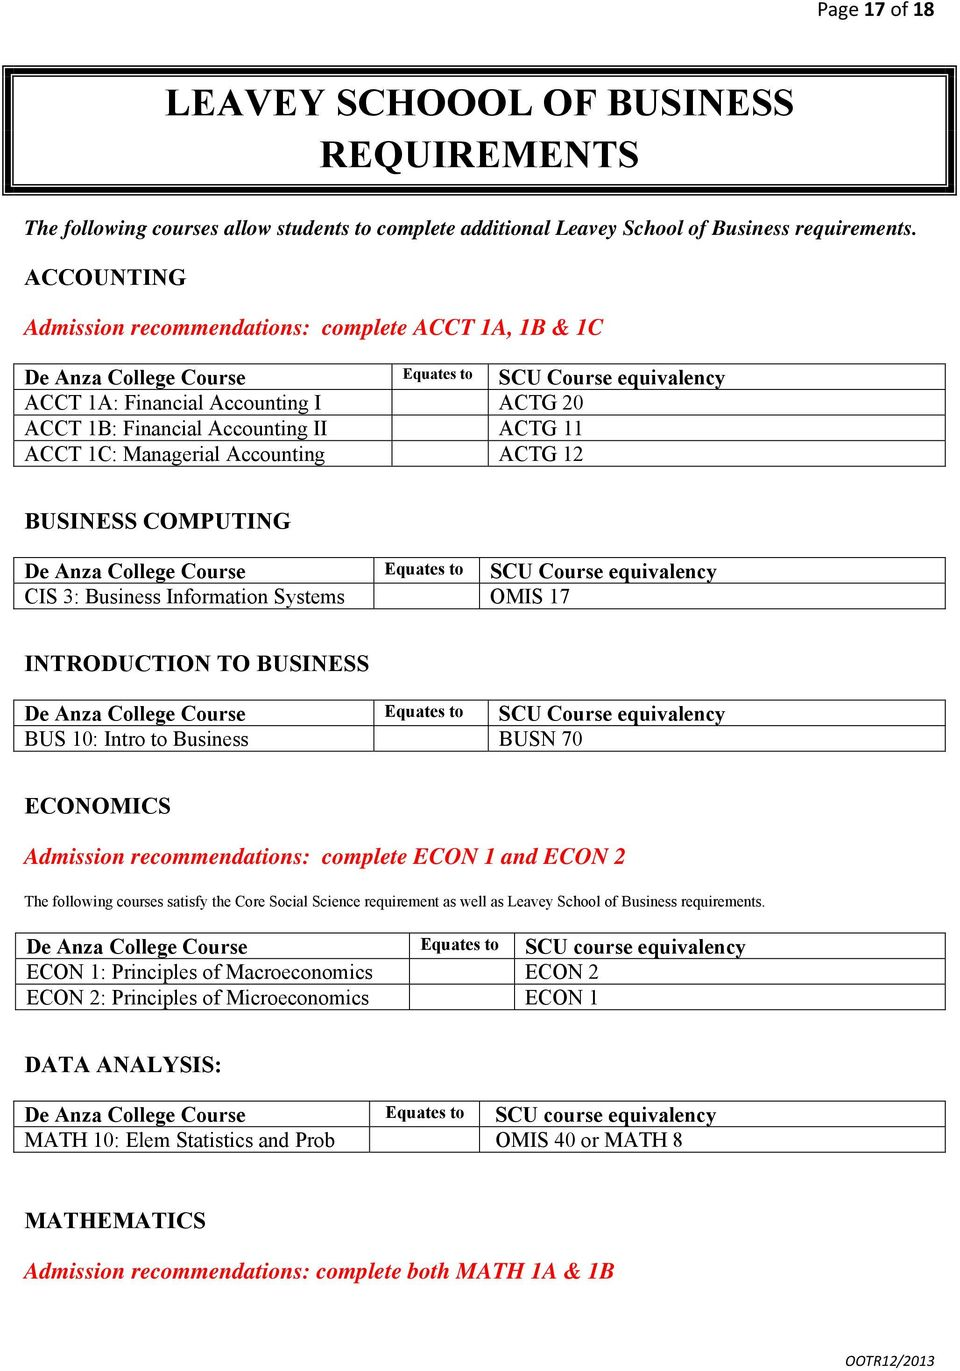 Accounting ACTG 12 BUSINESS COMPUTING Equates to SCU Course equivalency CIS 3: Business Information Systems OMIS 17 INTRODUCTION TO BUSINESS Equates to SCU Course equivalency BUS 10: Intro to